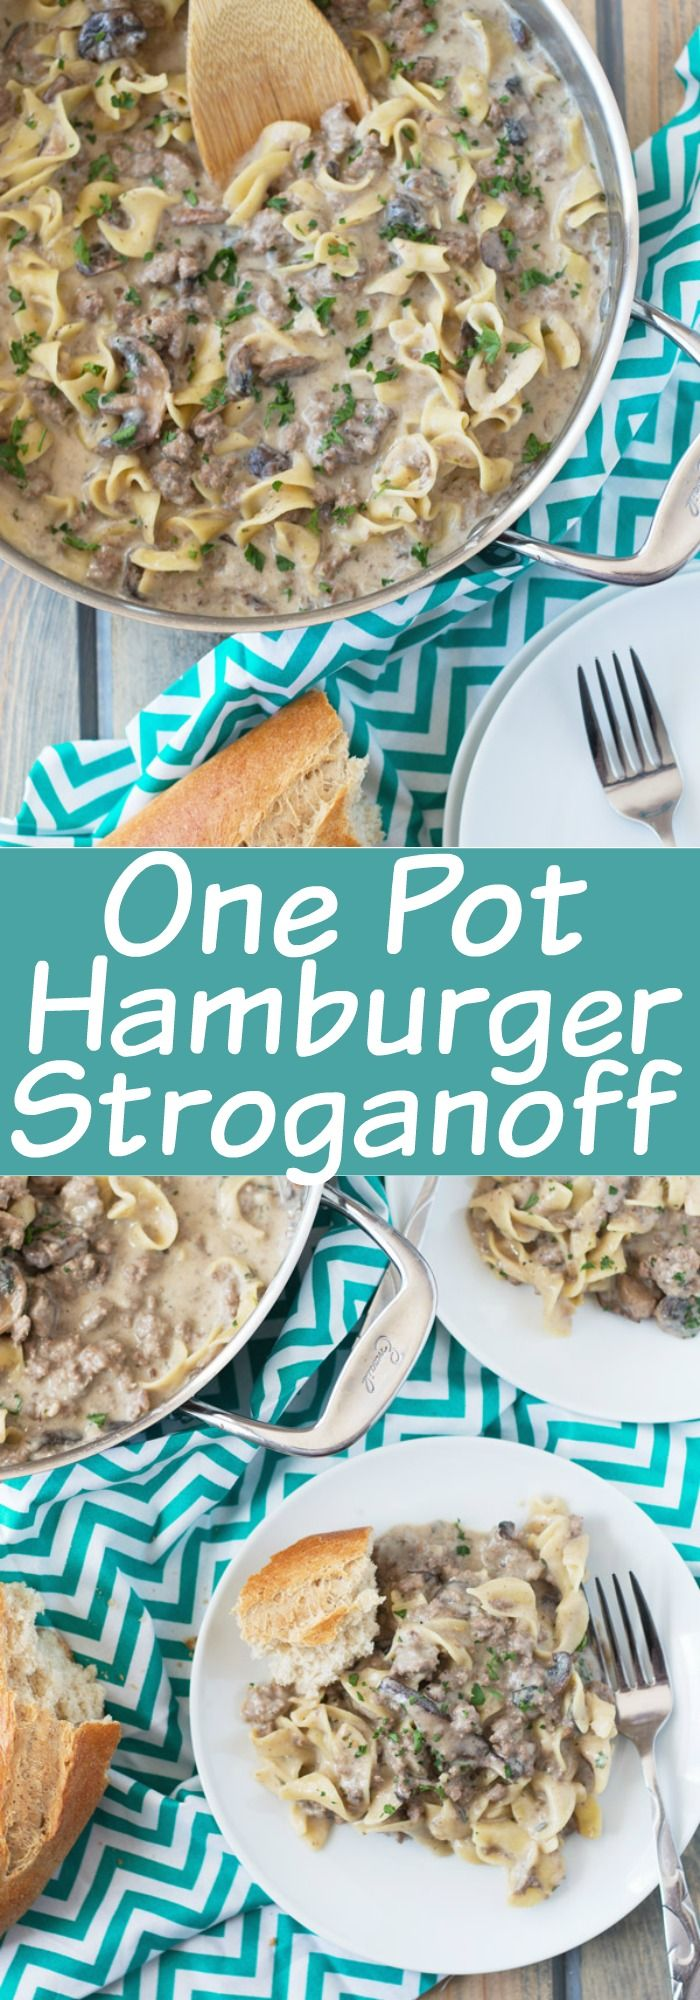 One Pot Hamburger Stroganoff is a quick and easy recipe. Ground beef, onions, mushrooms and egg noodles all cooked in a creamy sauce. (no cream of mushroom soup) | www.countrysidecravings.com